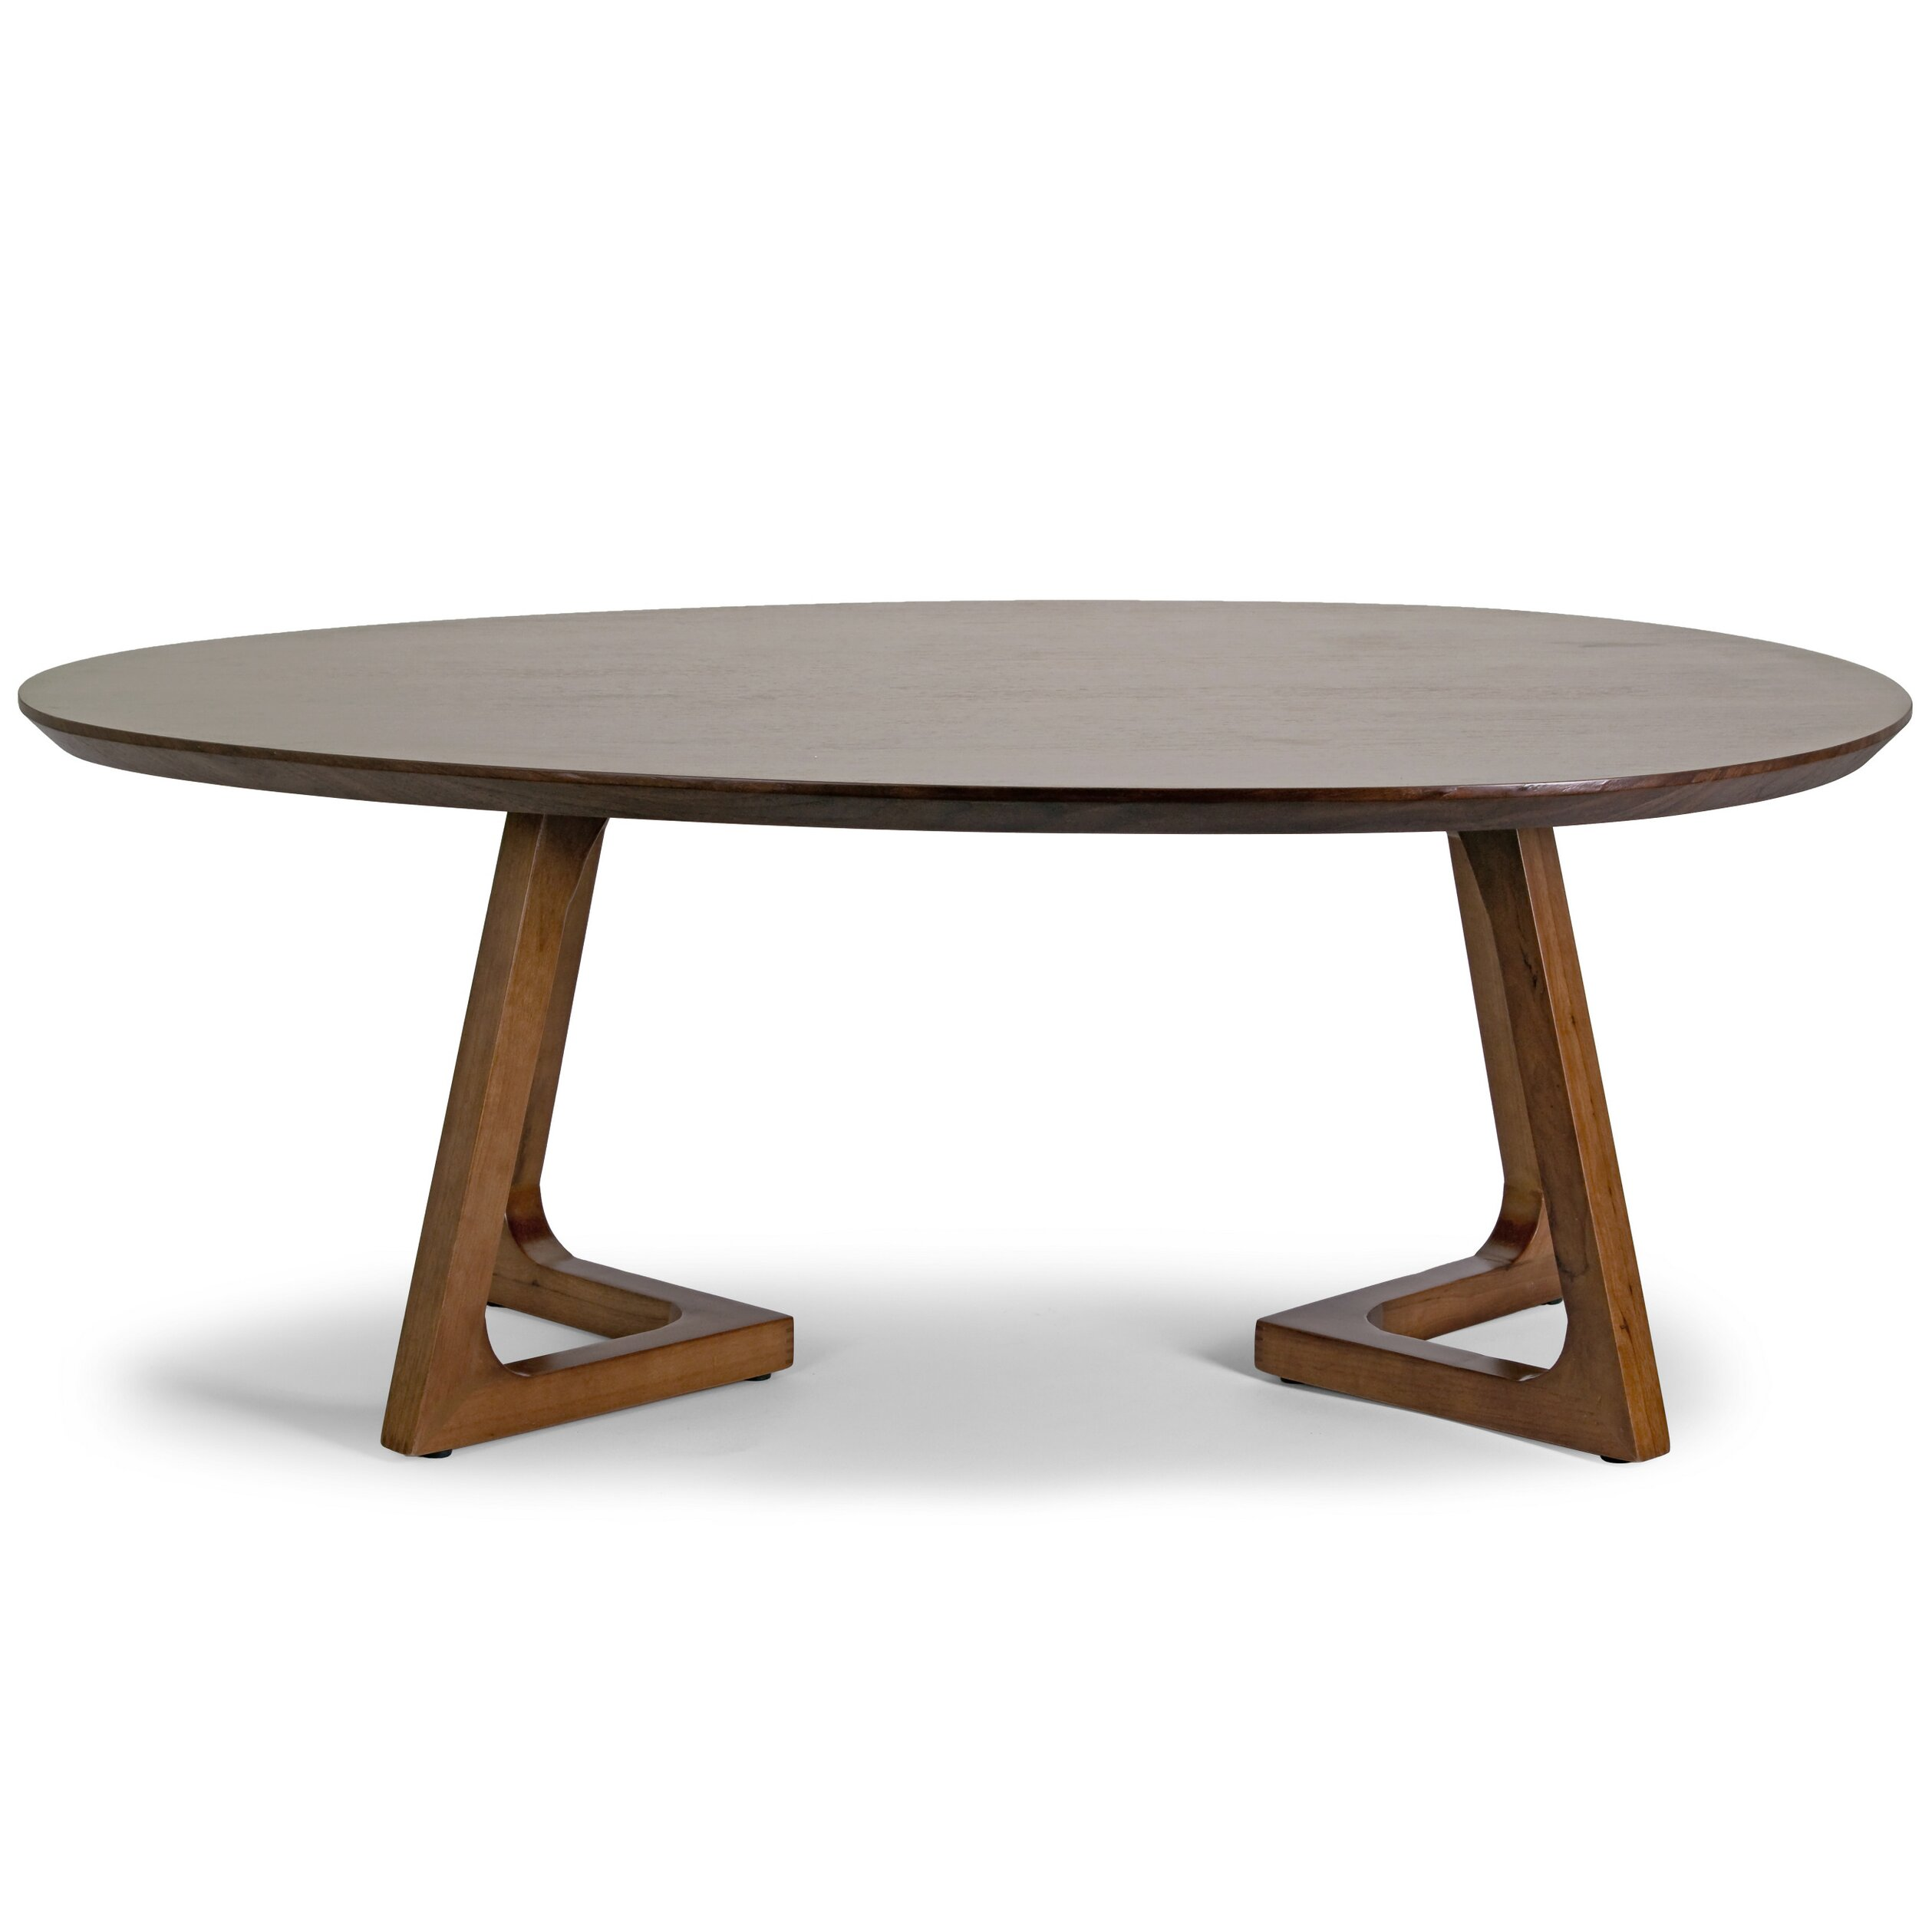 Glamour home decor ailsa irregular oval coffee table wayfair for Wayfair oval coffee table